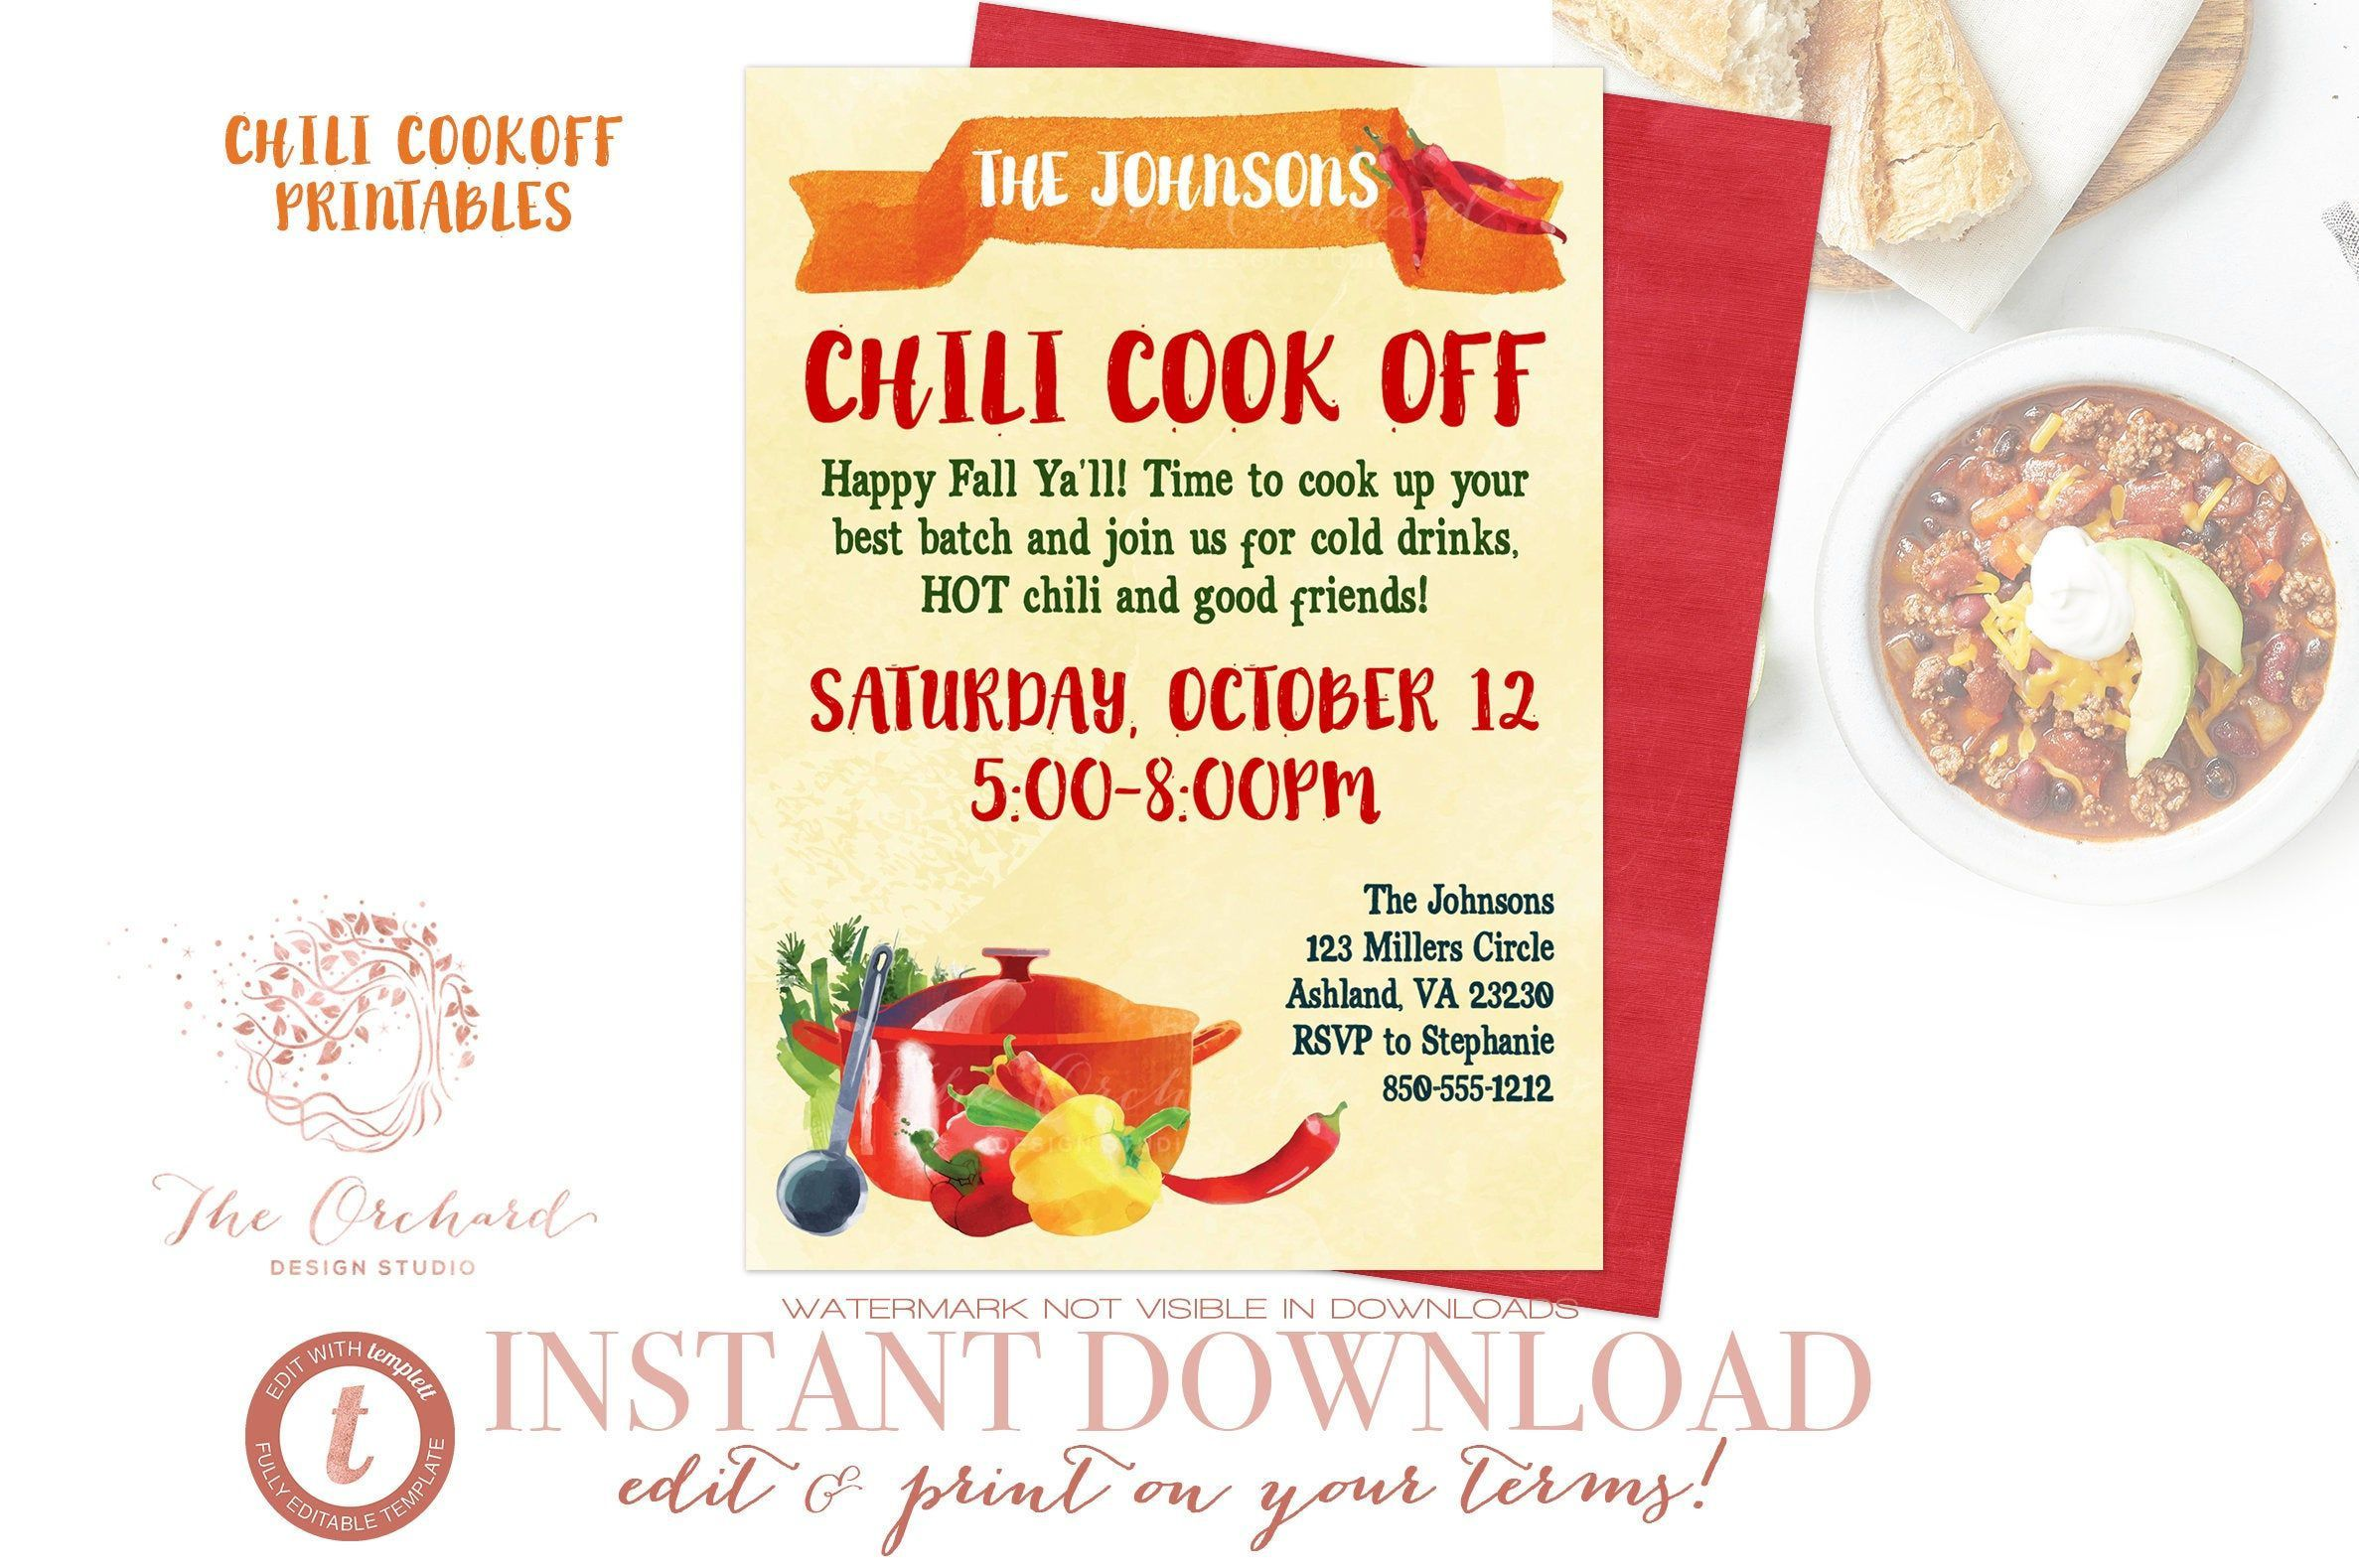 004 Fantastic Chili Cook Off Flyer Template Sample  Halloween Office PowerpointFull